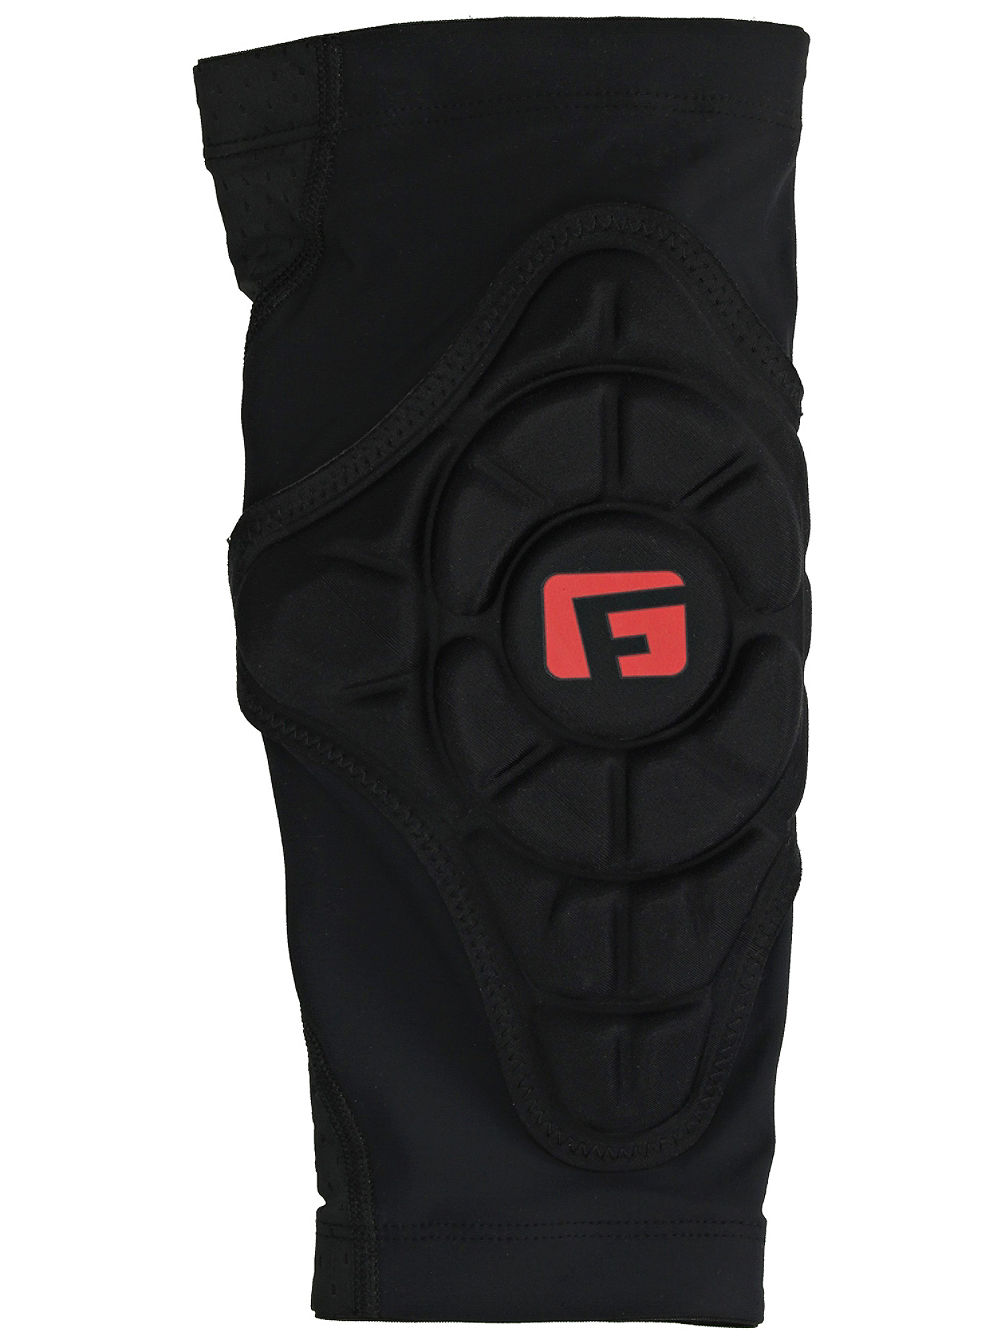 Pro Slide Knee Pad Black